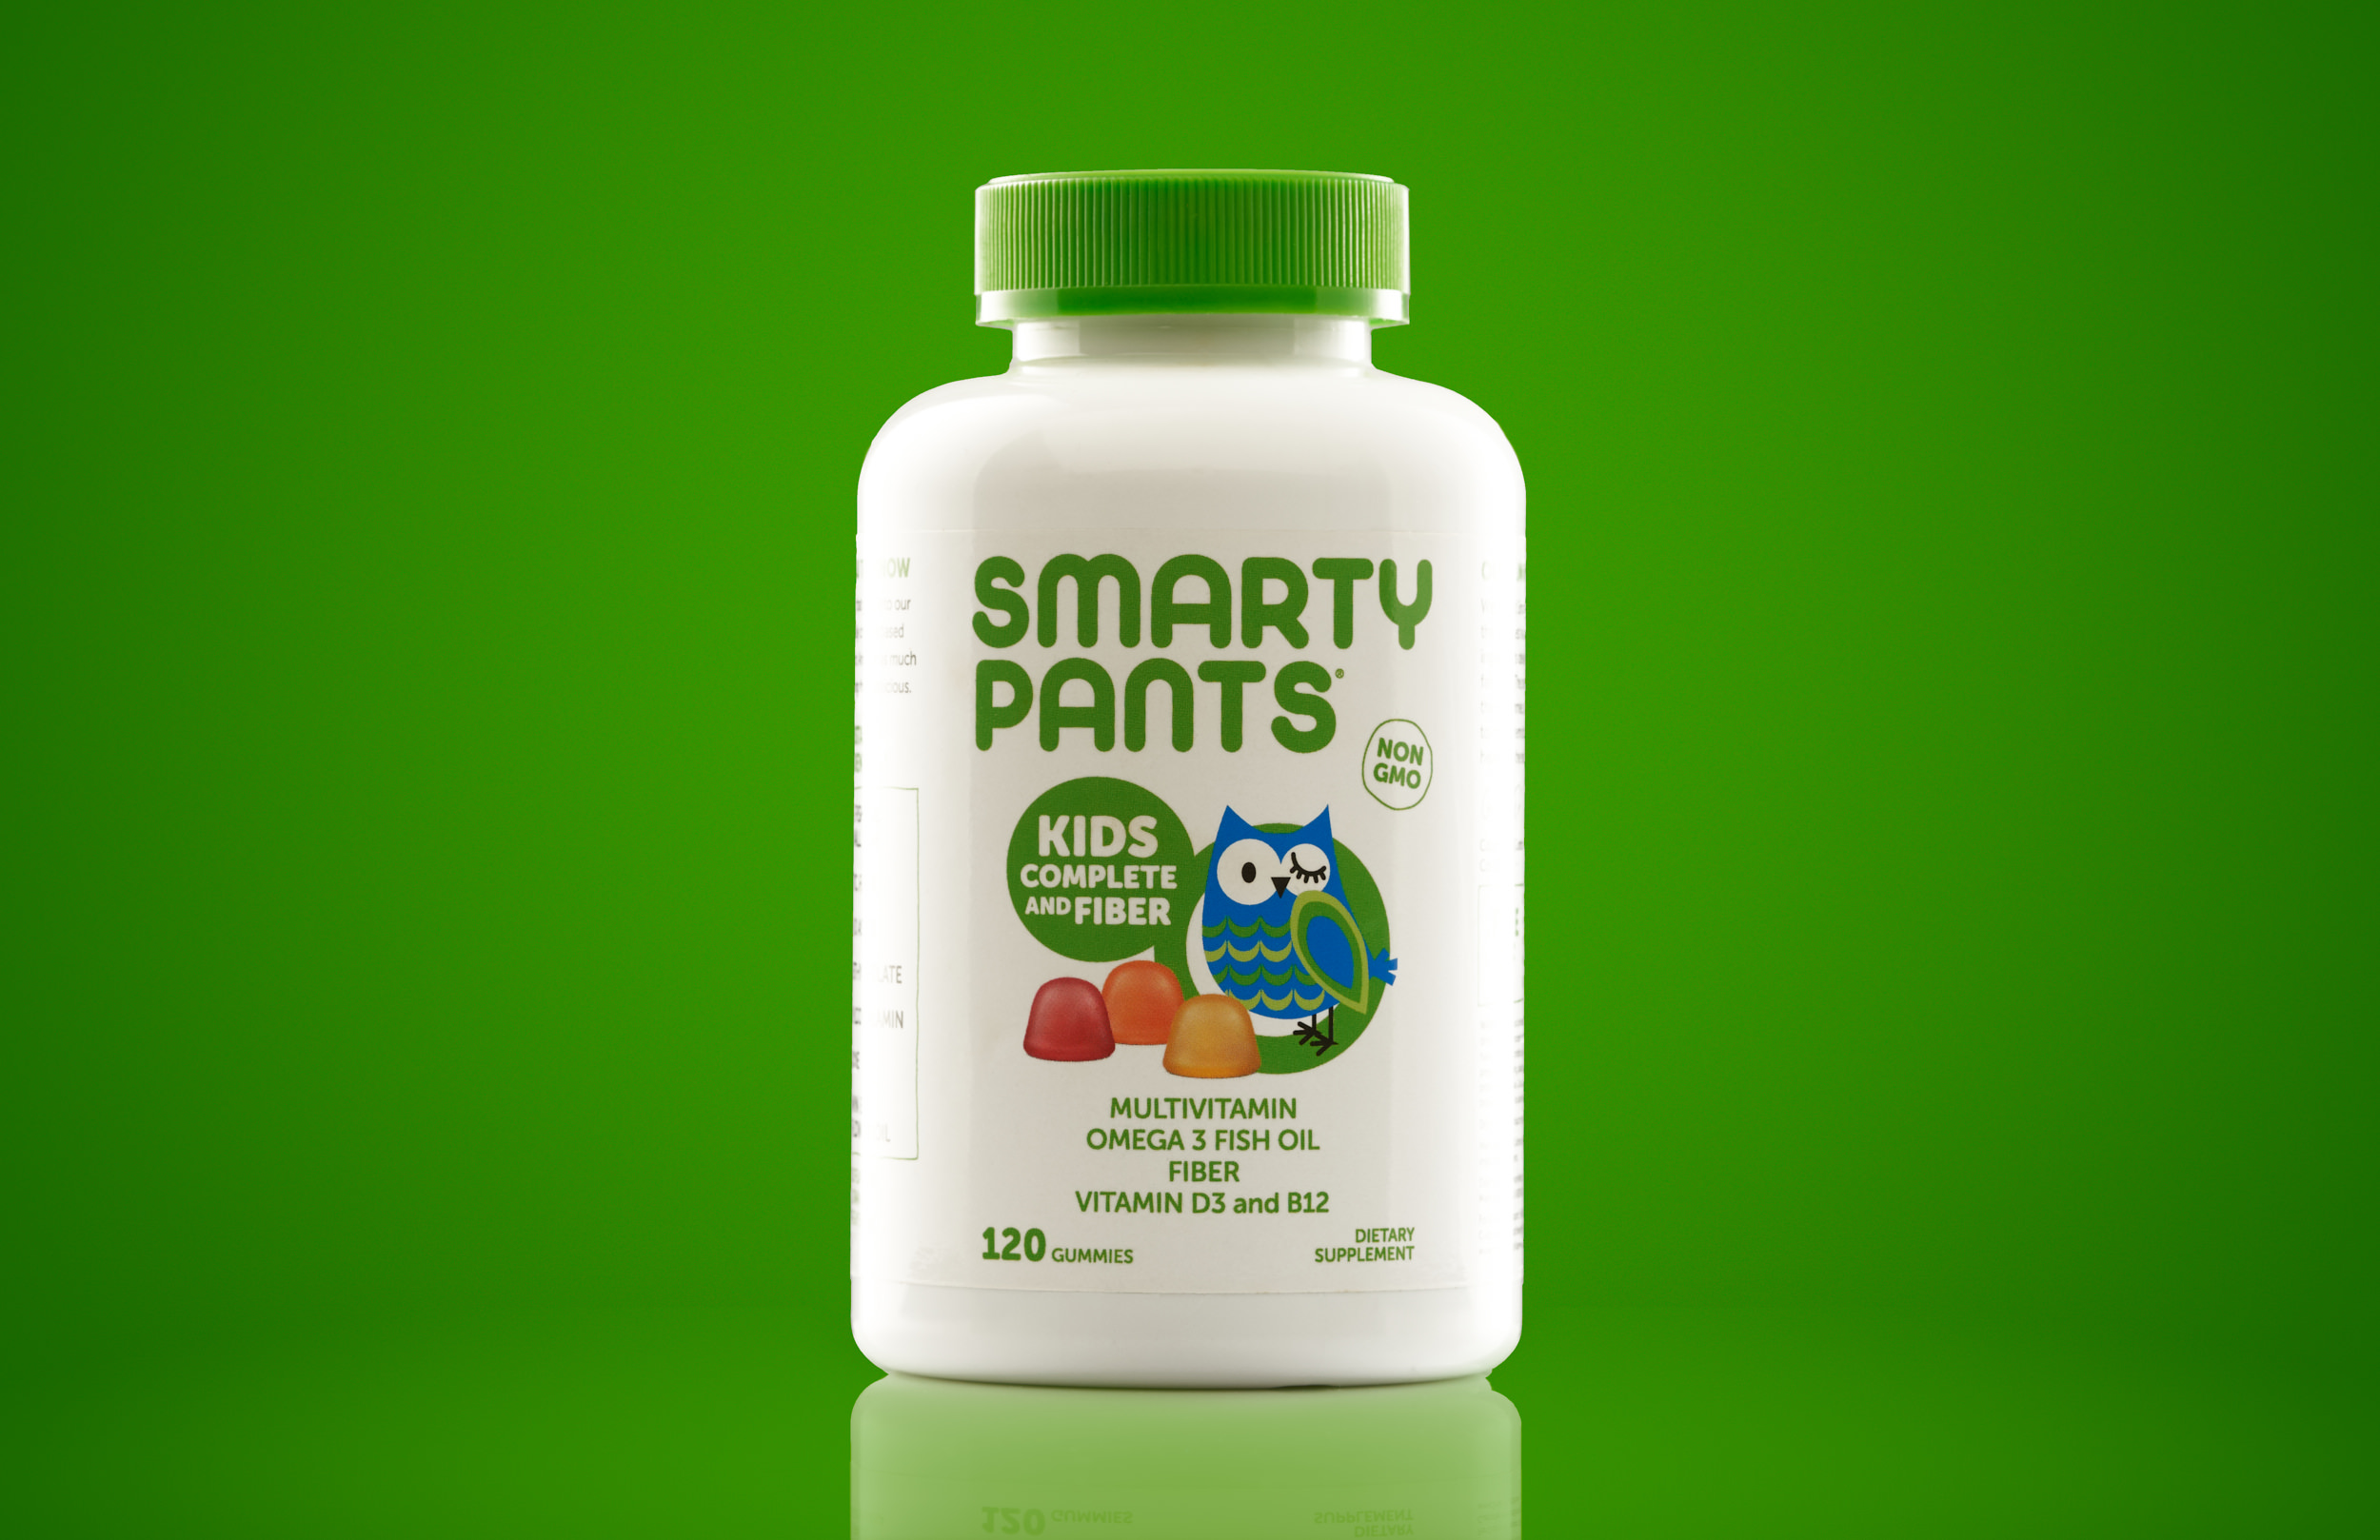 Studio picture of Smarty Pants vitamins with a green background